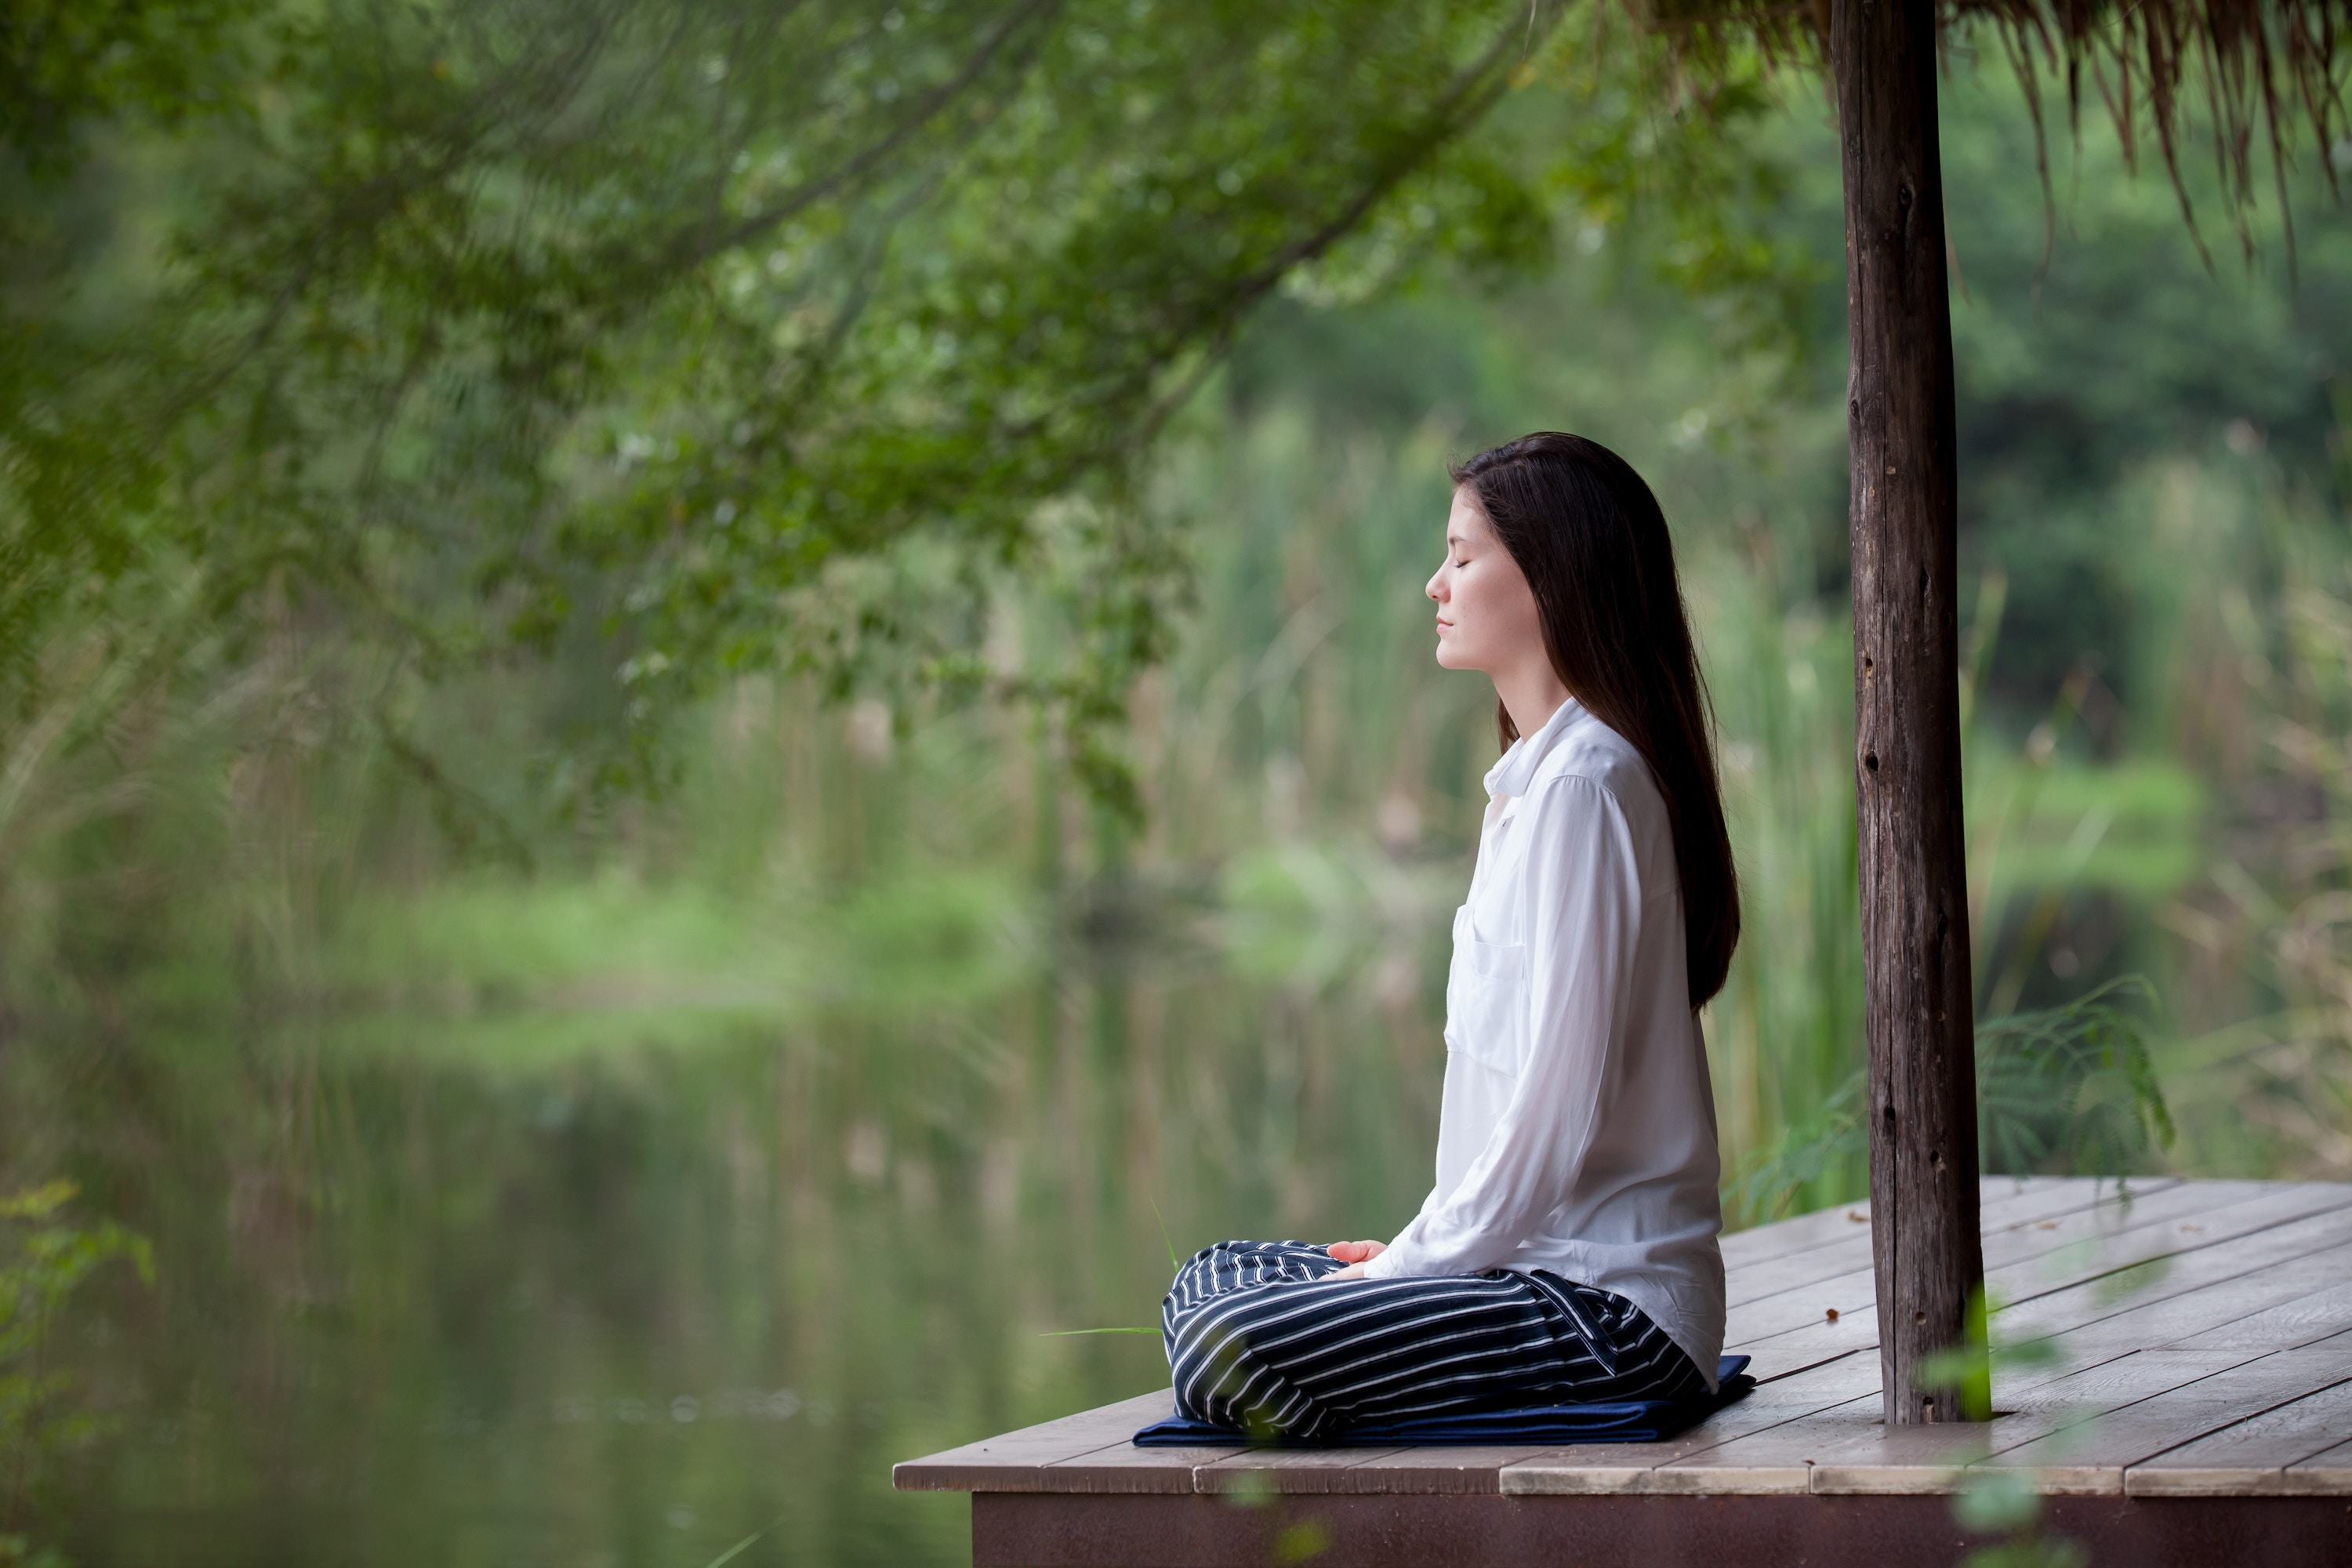 Long-haired woman meditating on the dock of a lake.